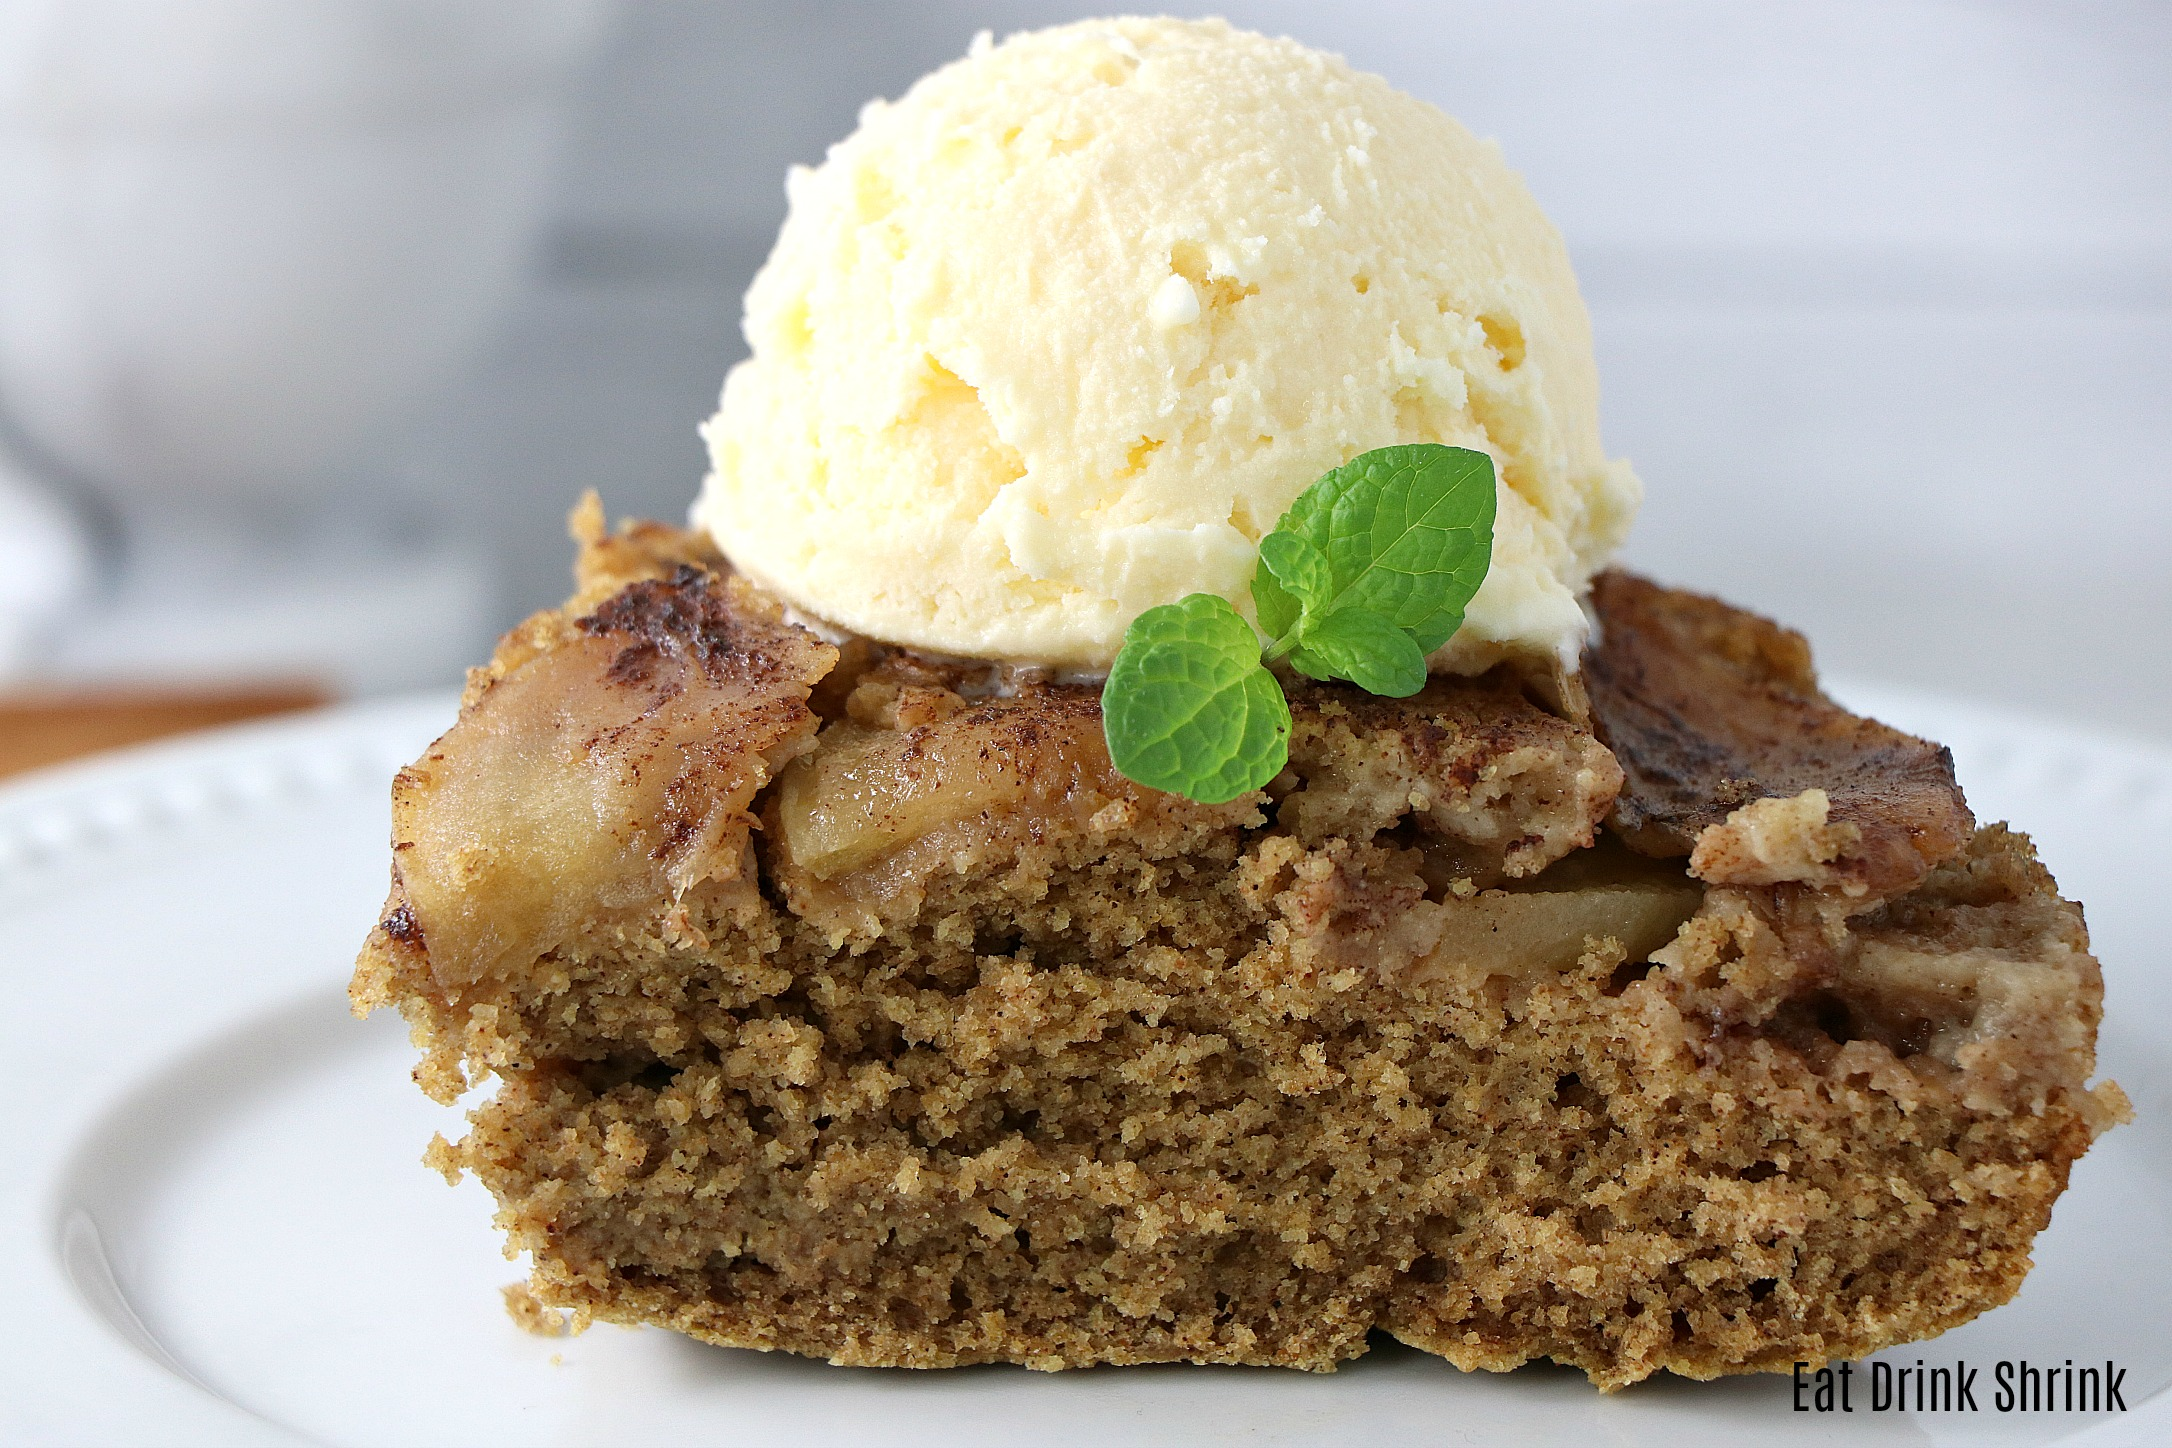 Vegan Cinnamon Apple Upside Down Cake